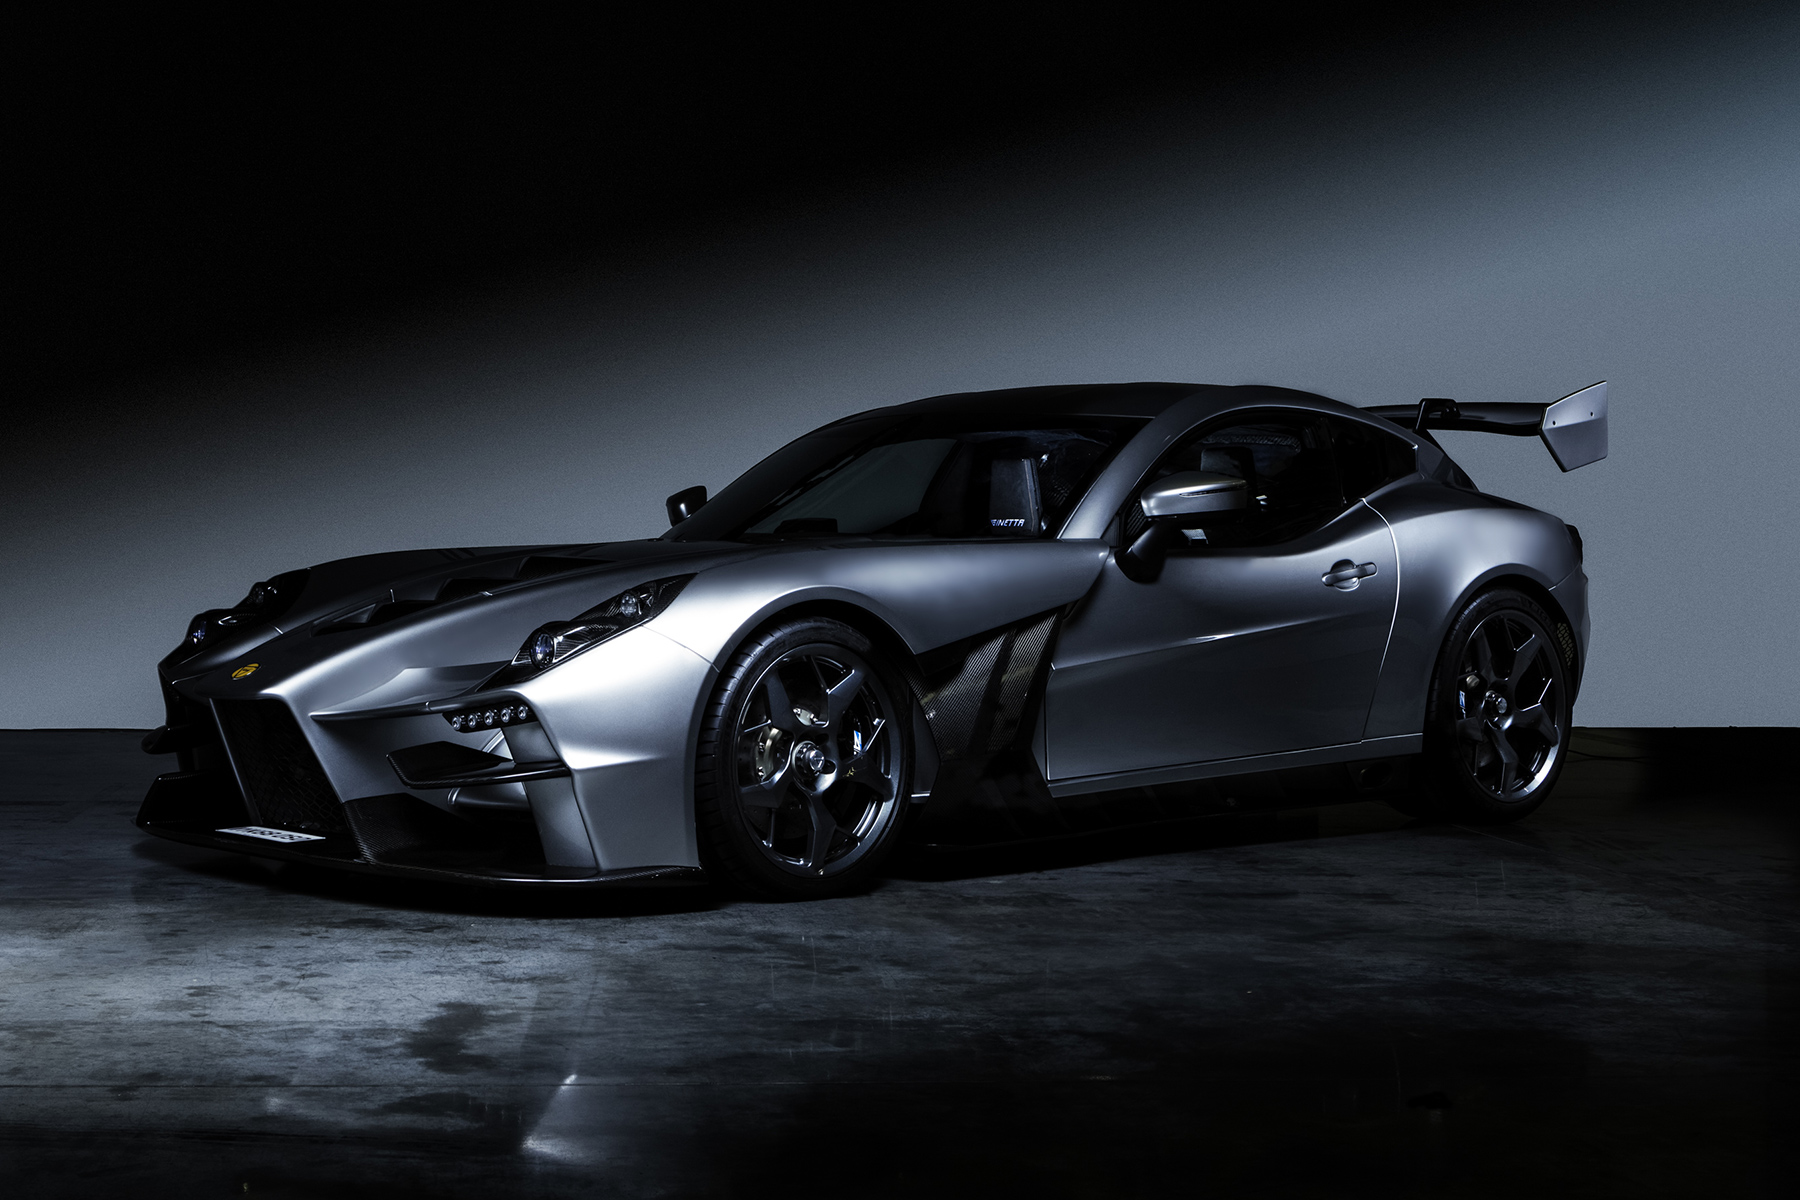 all-new 600 hp ginetta supercar revealed